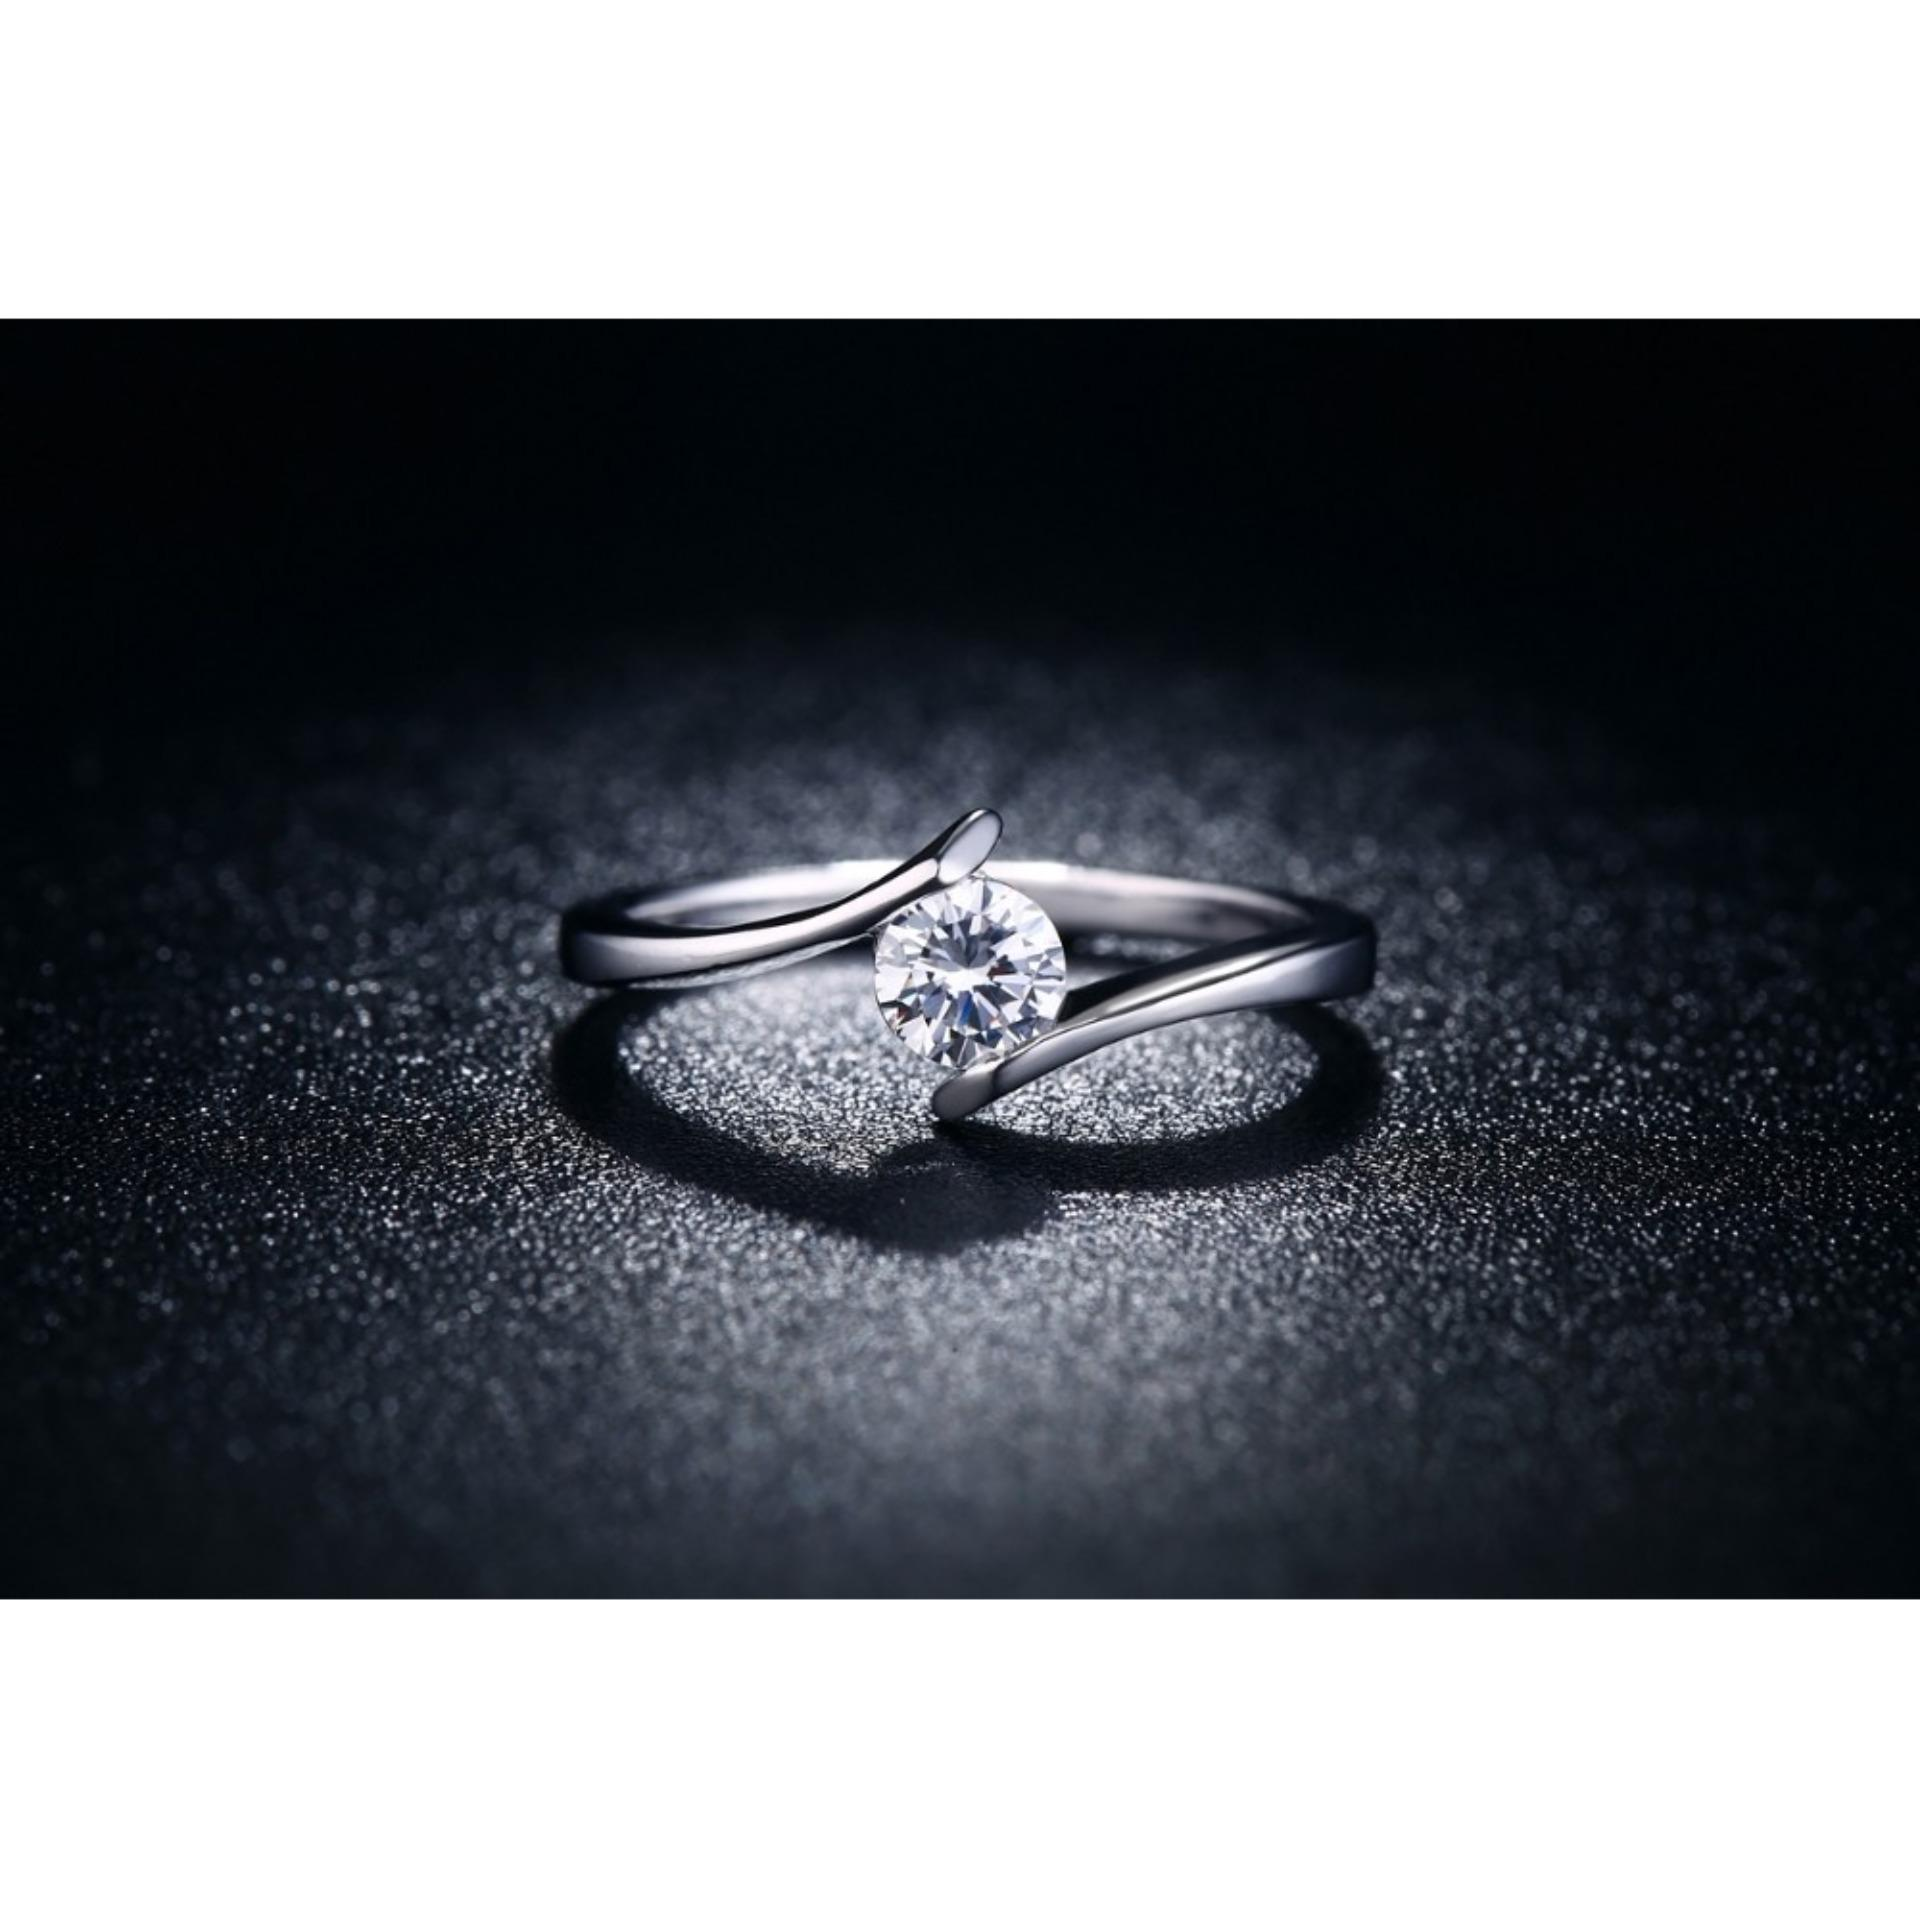 Cincin Silver Berlian Lapis Platinum Perhiasan Simple Elegan